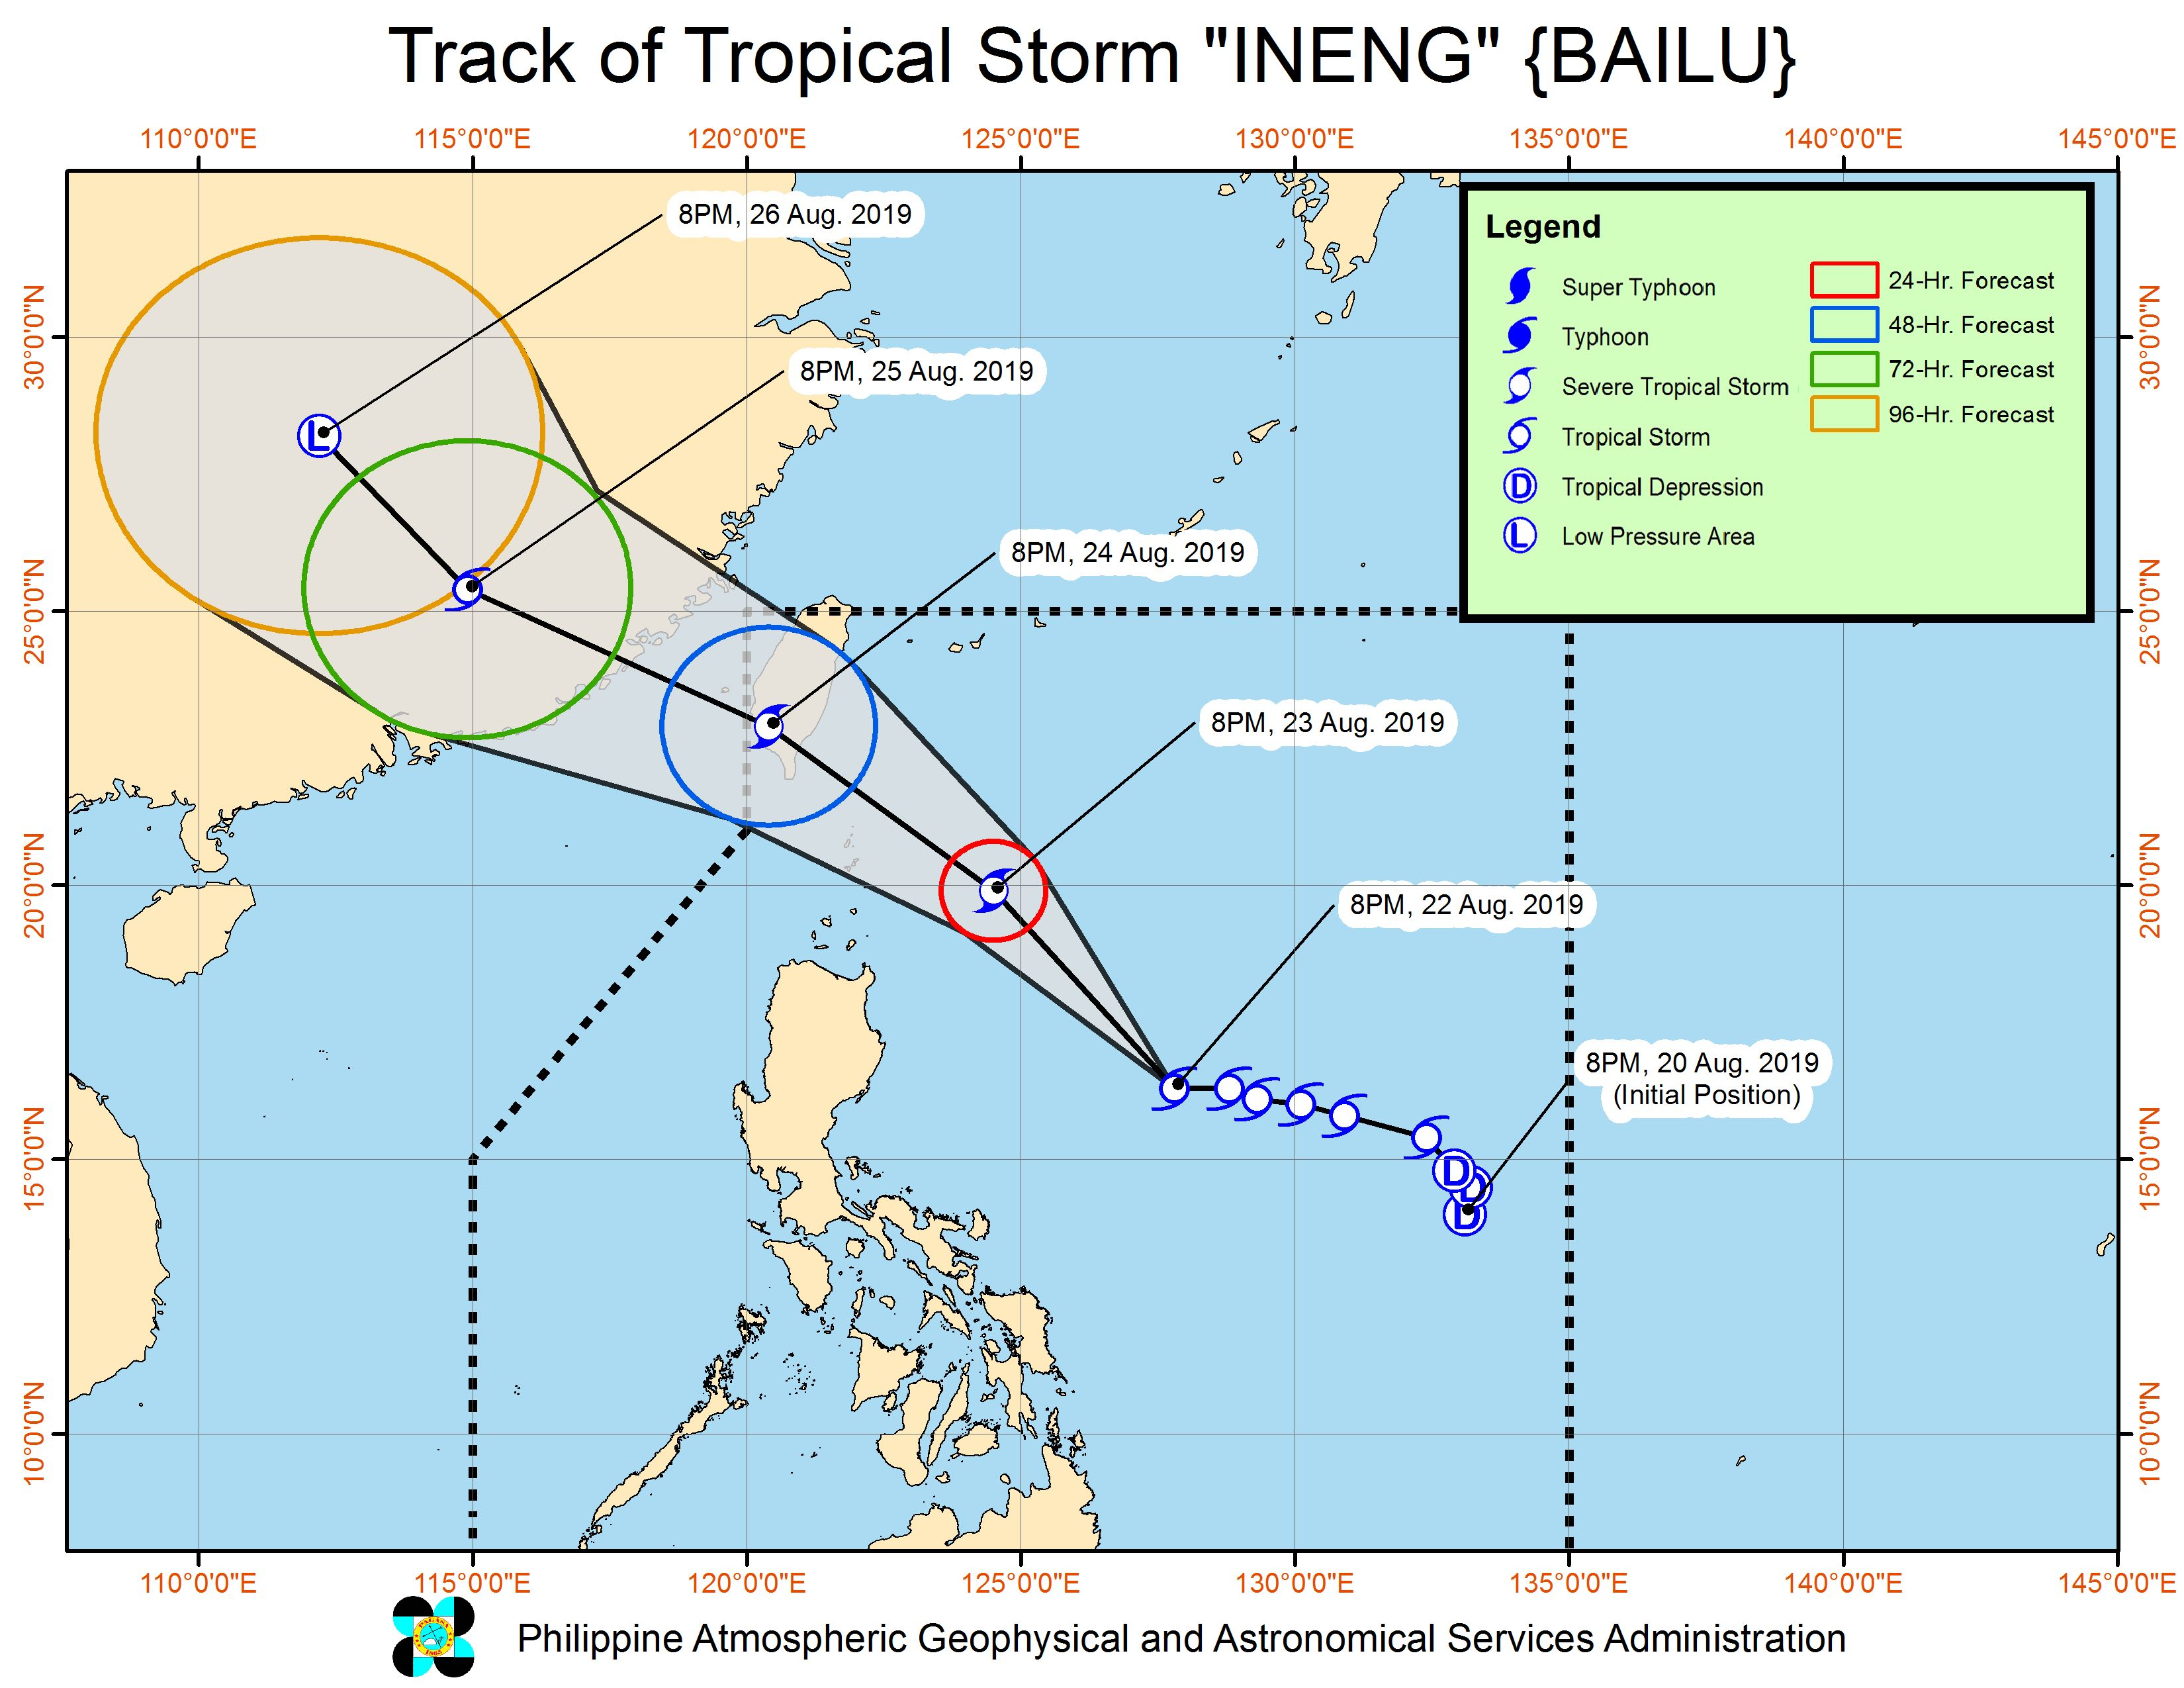 Forecast track of Tropical Storm Ineng (Bailu) as of August 22, 2019, 11 pm. Image from PAGASA